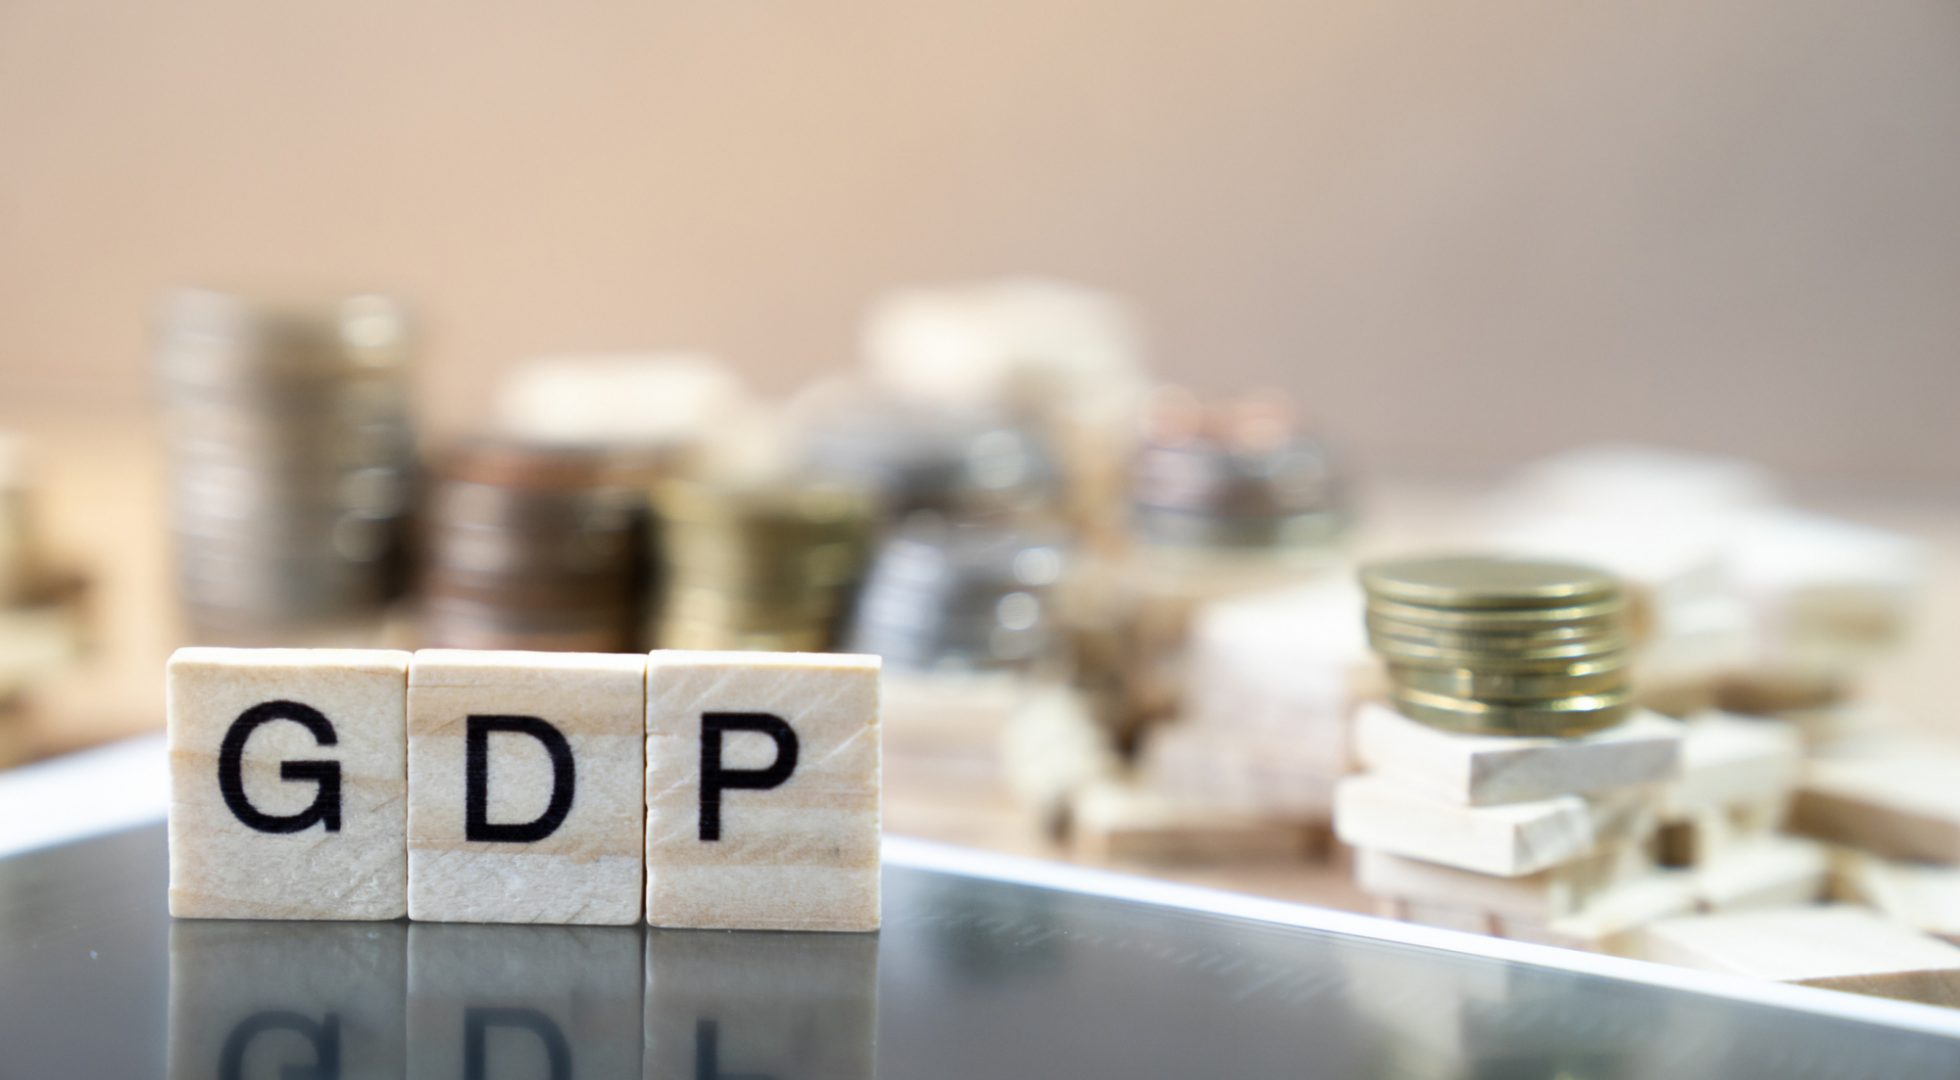 """""""GDP"""" spelled out with Scrabble tiles on desk."""